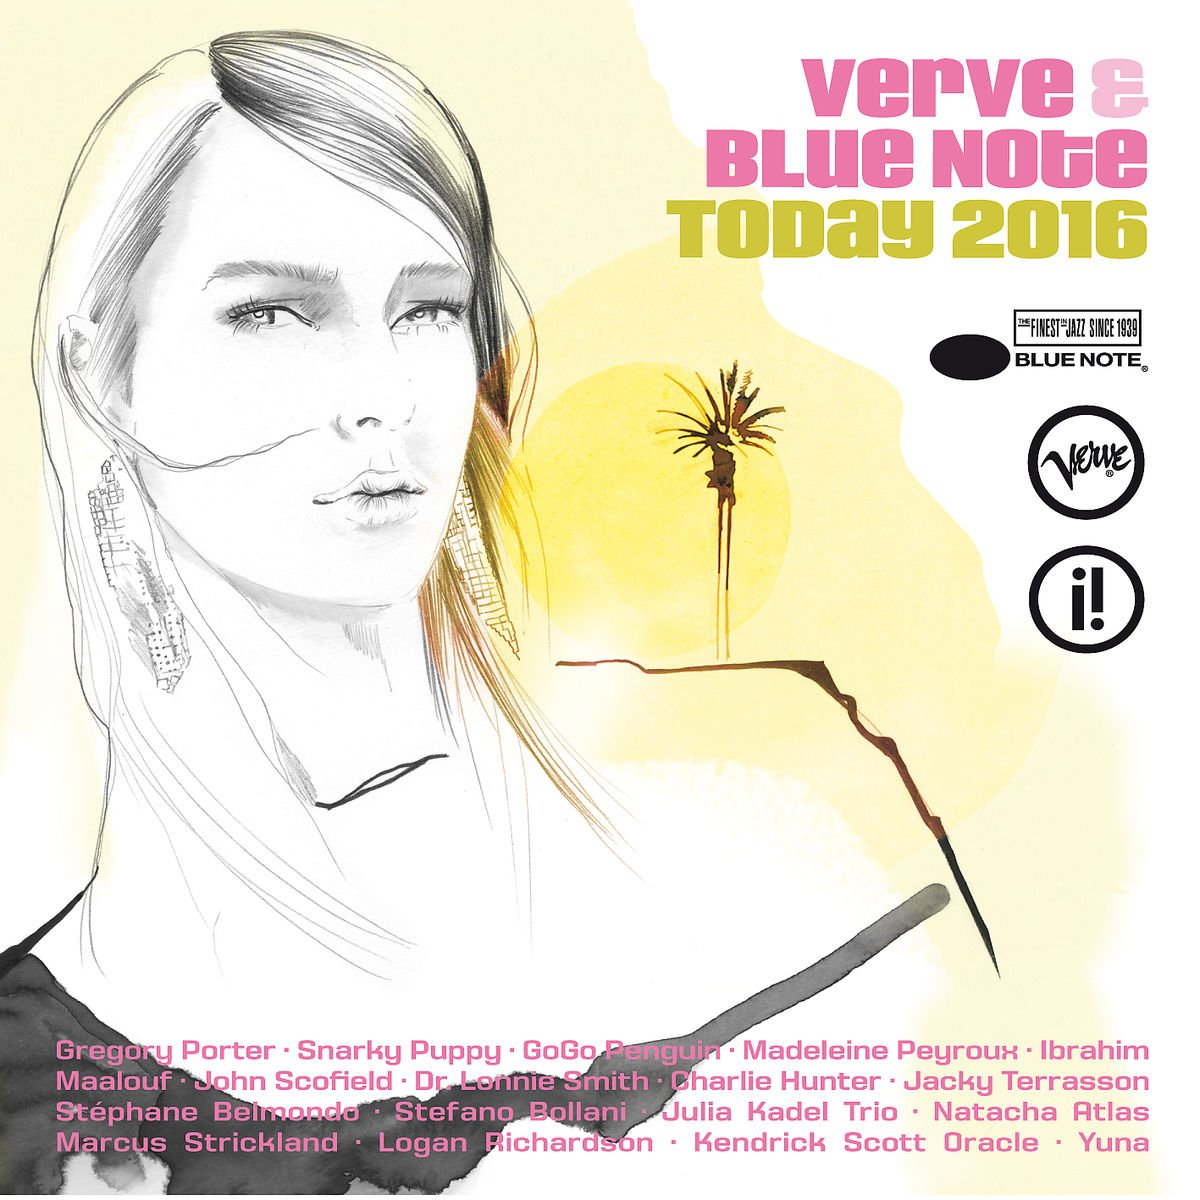 VA - Verve And Blue Note Today 2016 - CD - FLAC - 2016 - NBFLAC Download